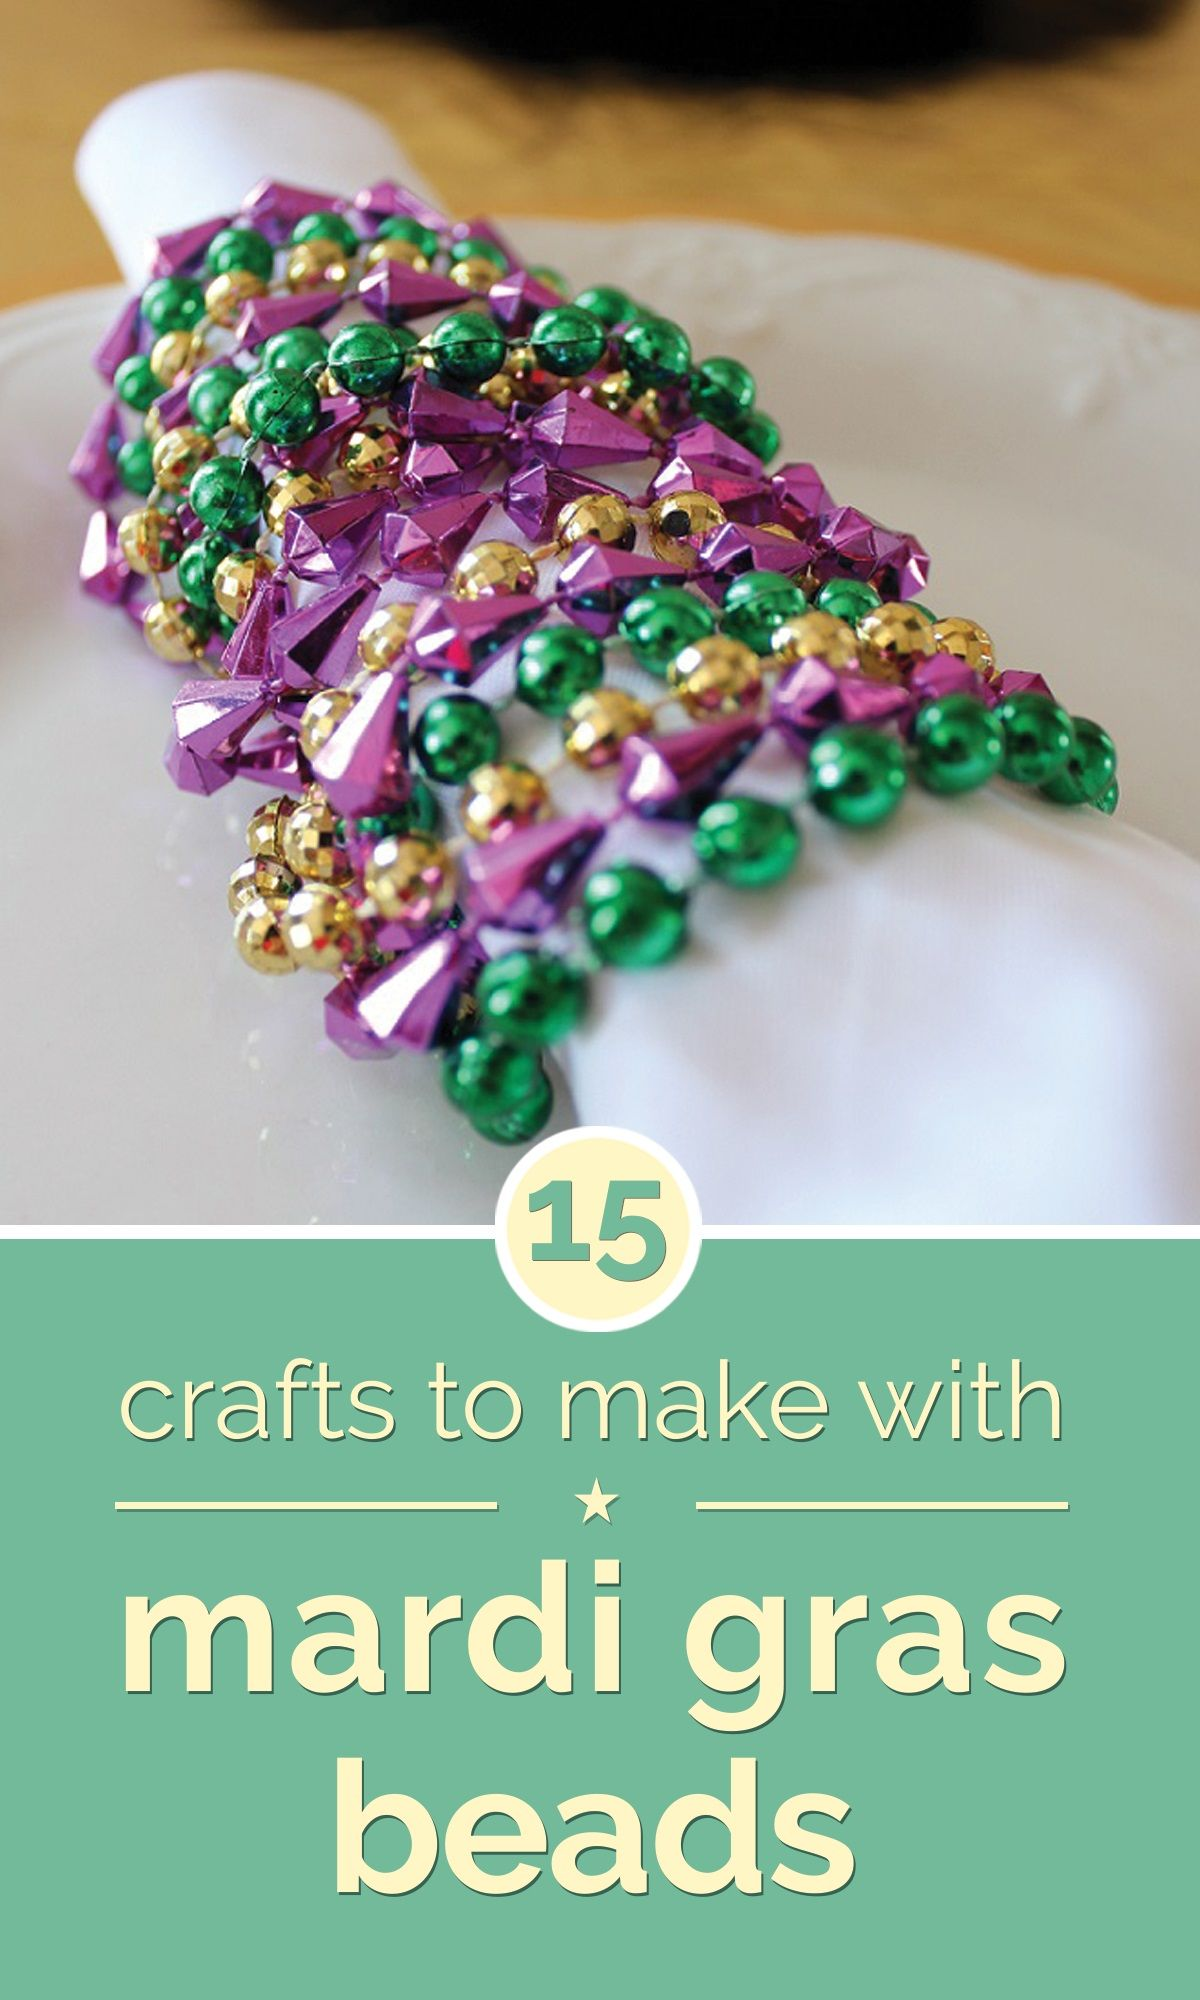 Mardi gras beads clipart kid bead necklace. Crafts to make